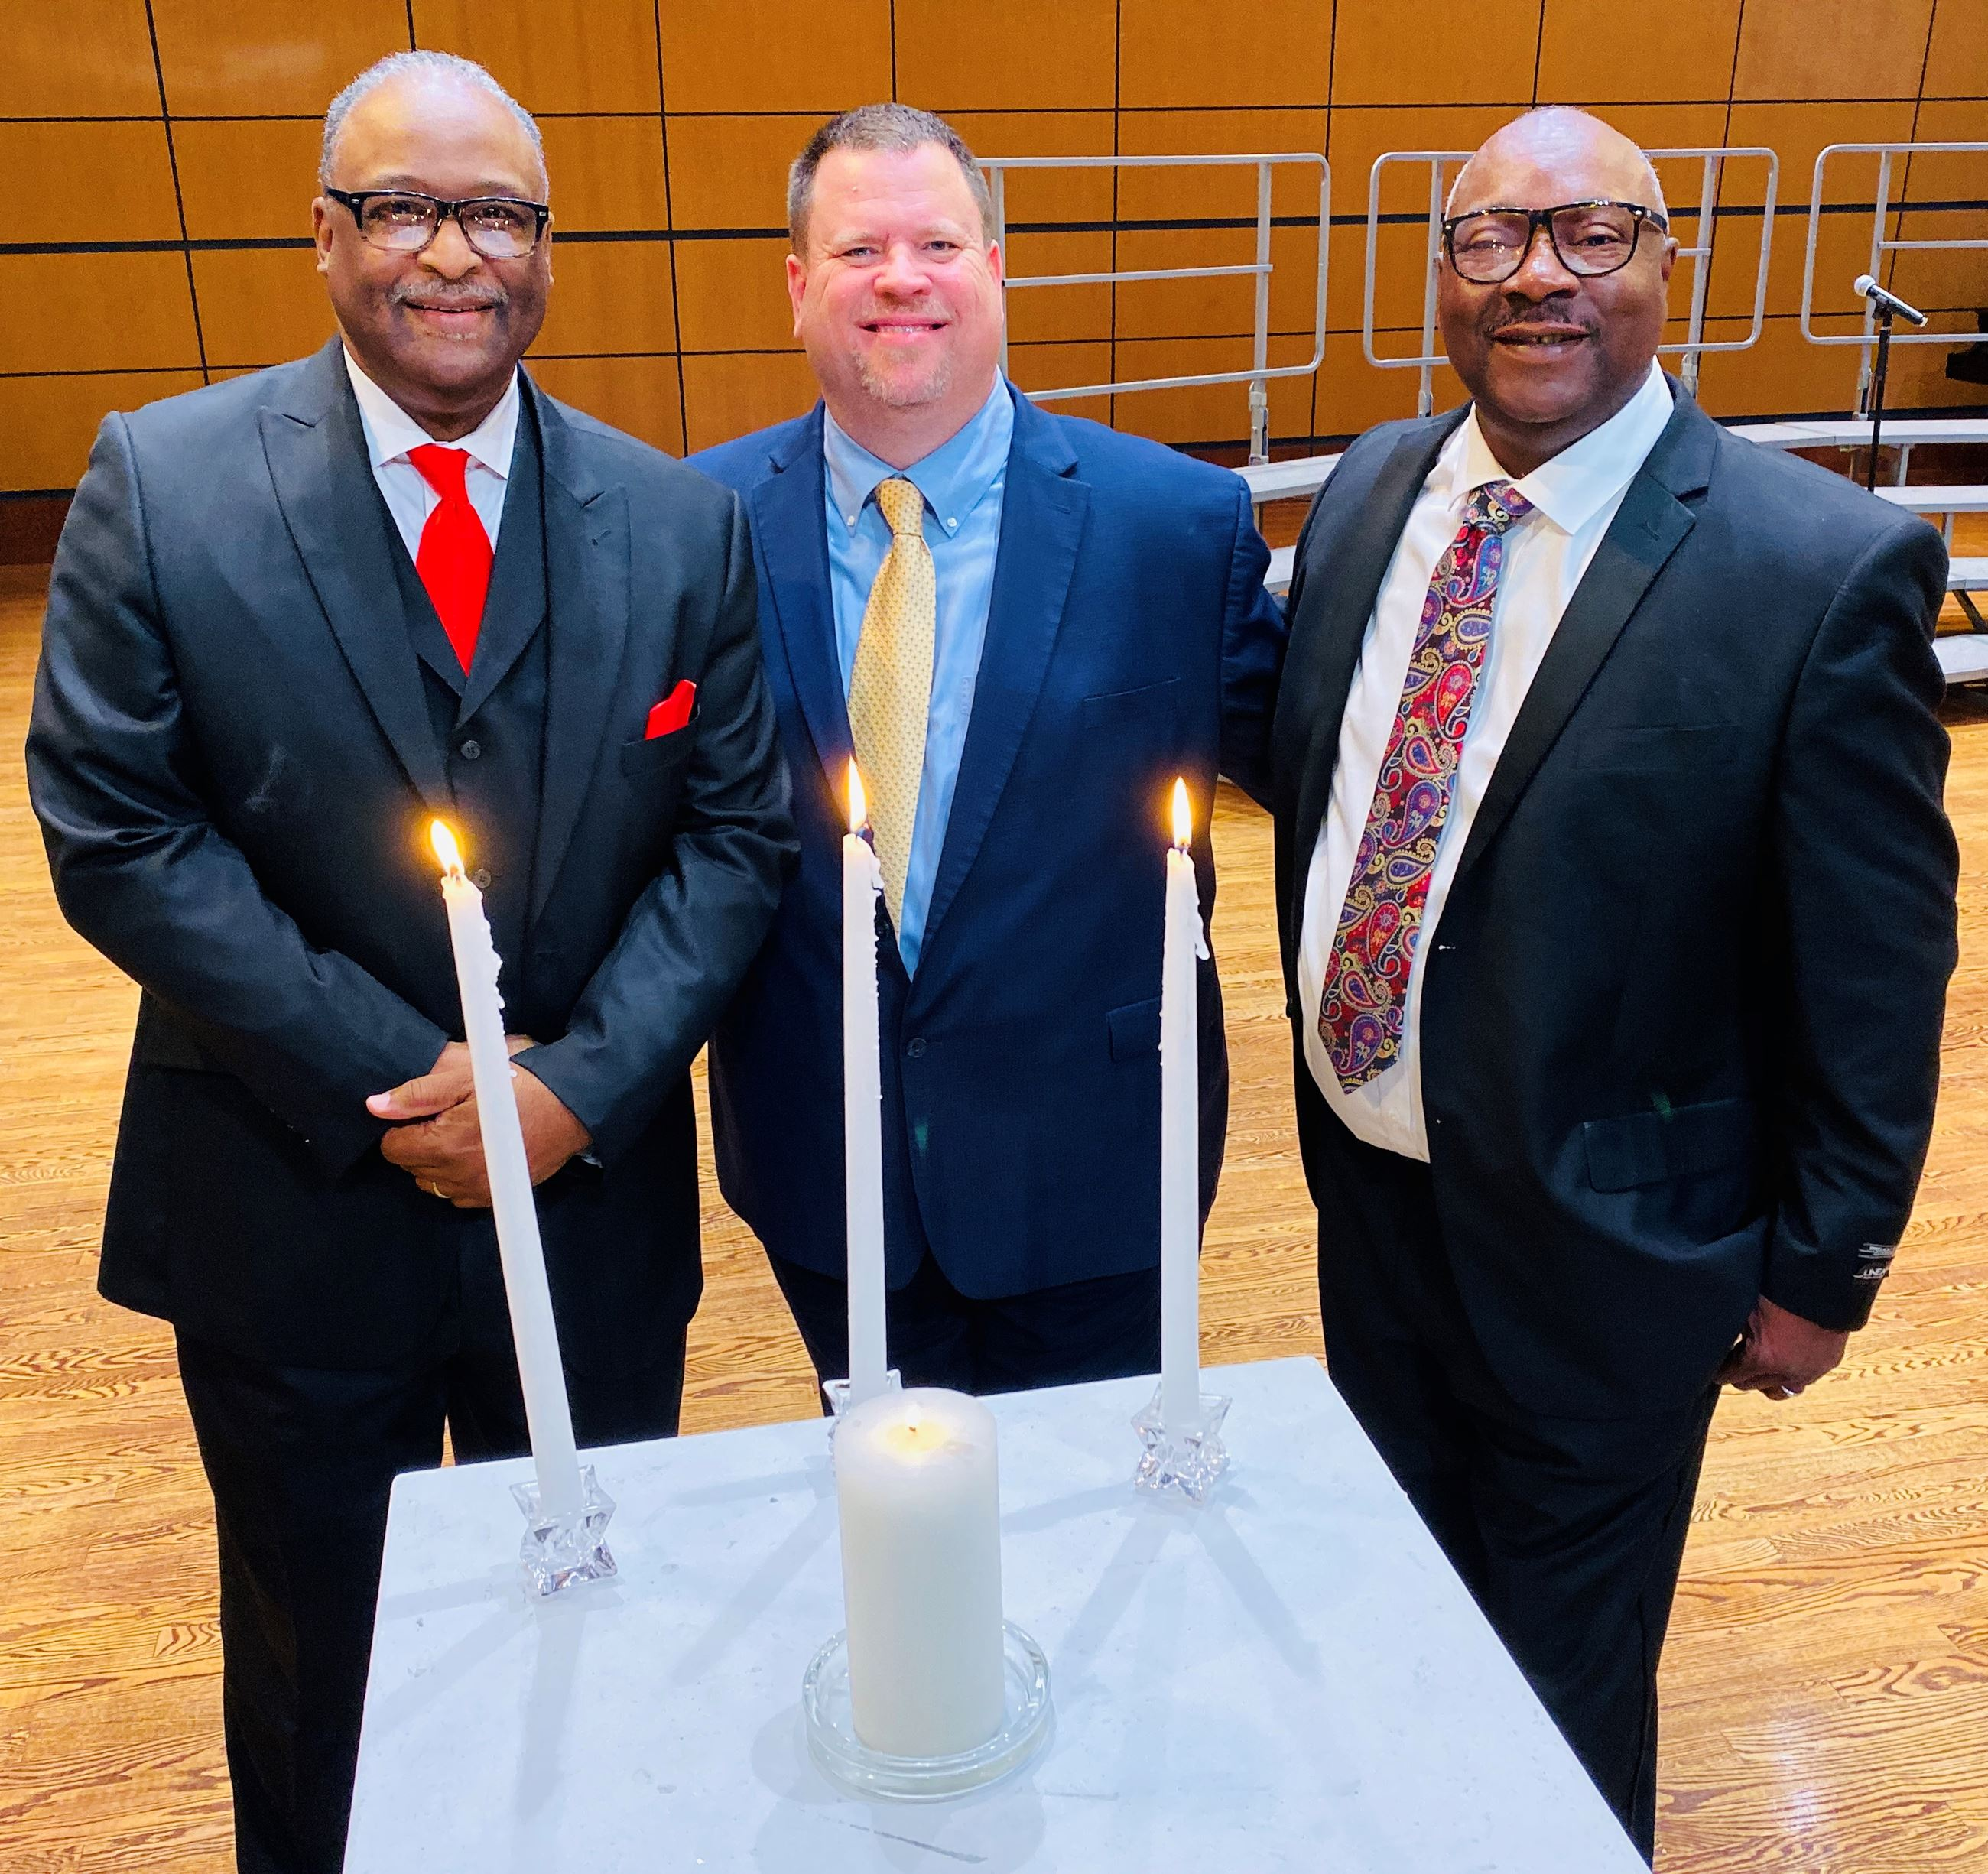 Mayor Archer lights unity candle at MLK event